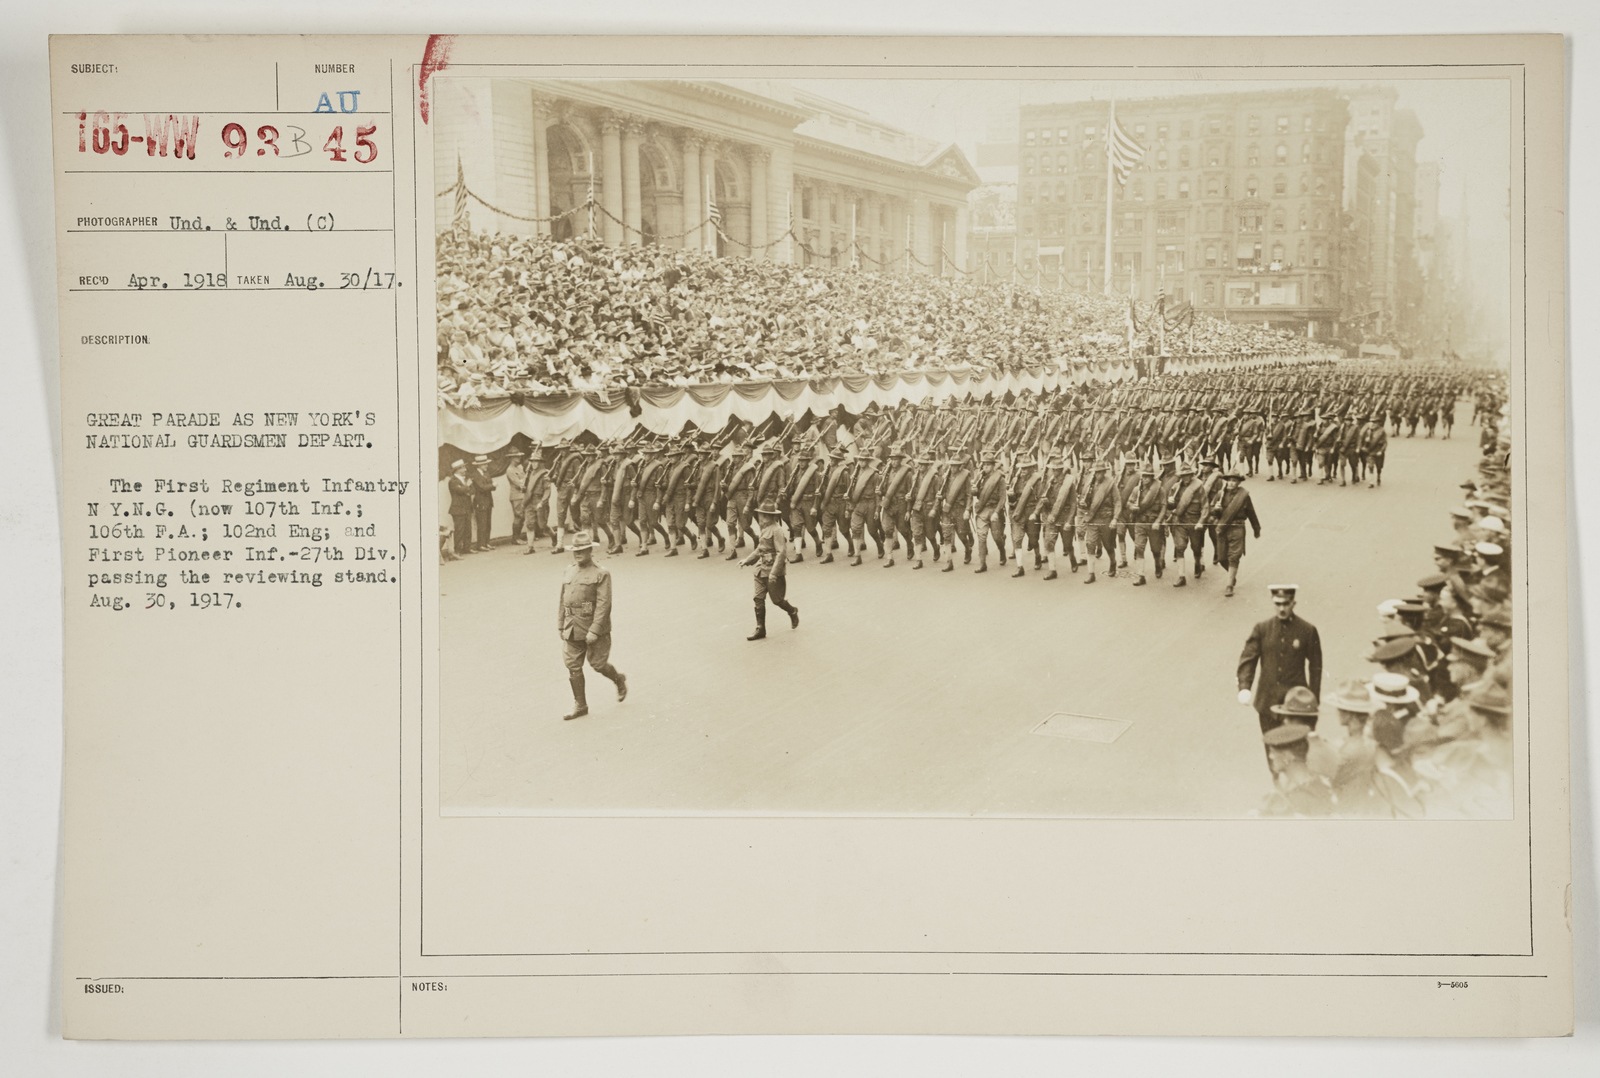 Ceremonies - Salutes and Parades - New York - Great Parade as New York's National Guardsmen depart